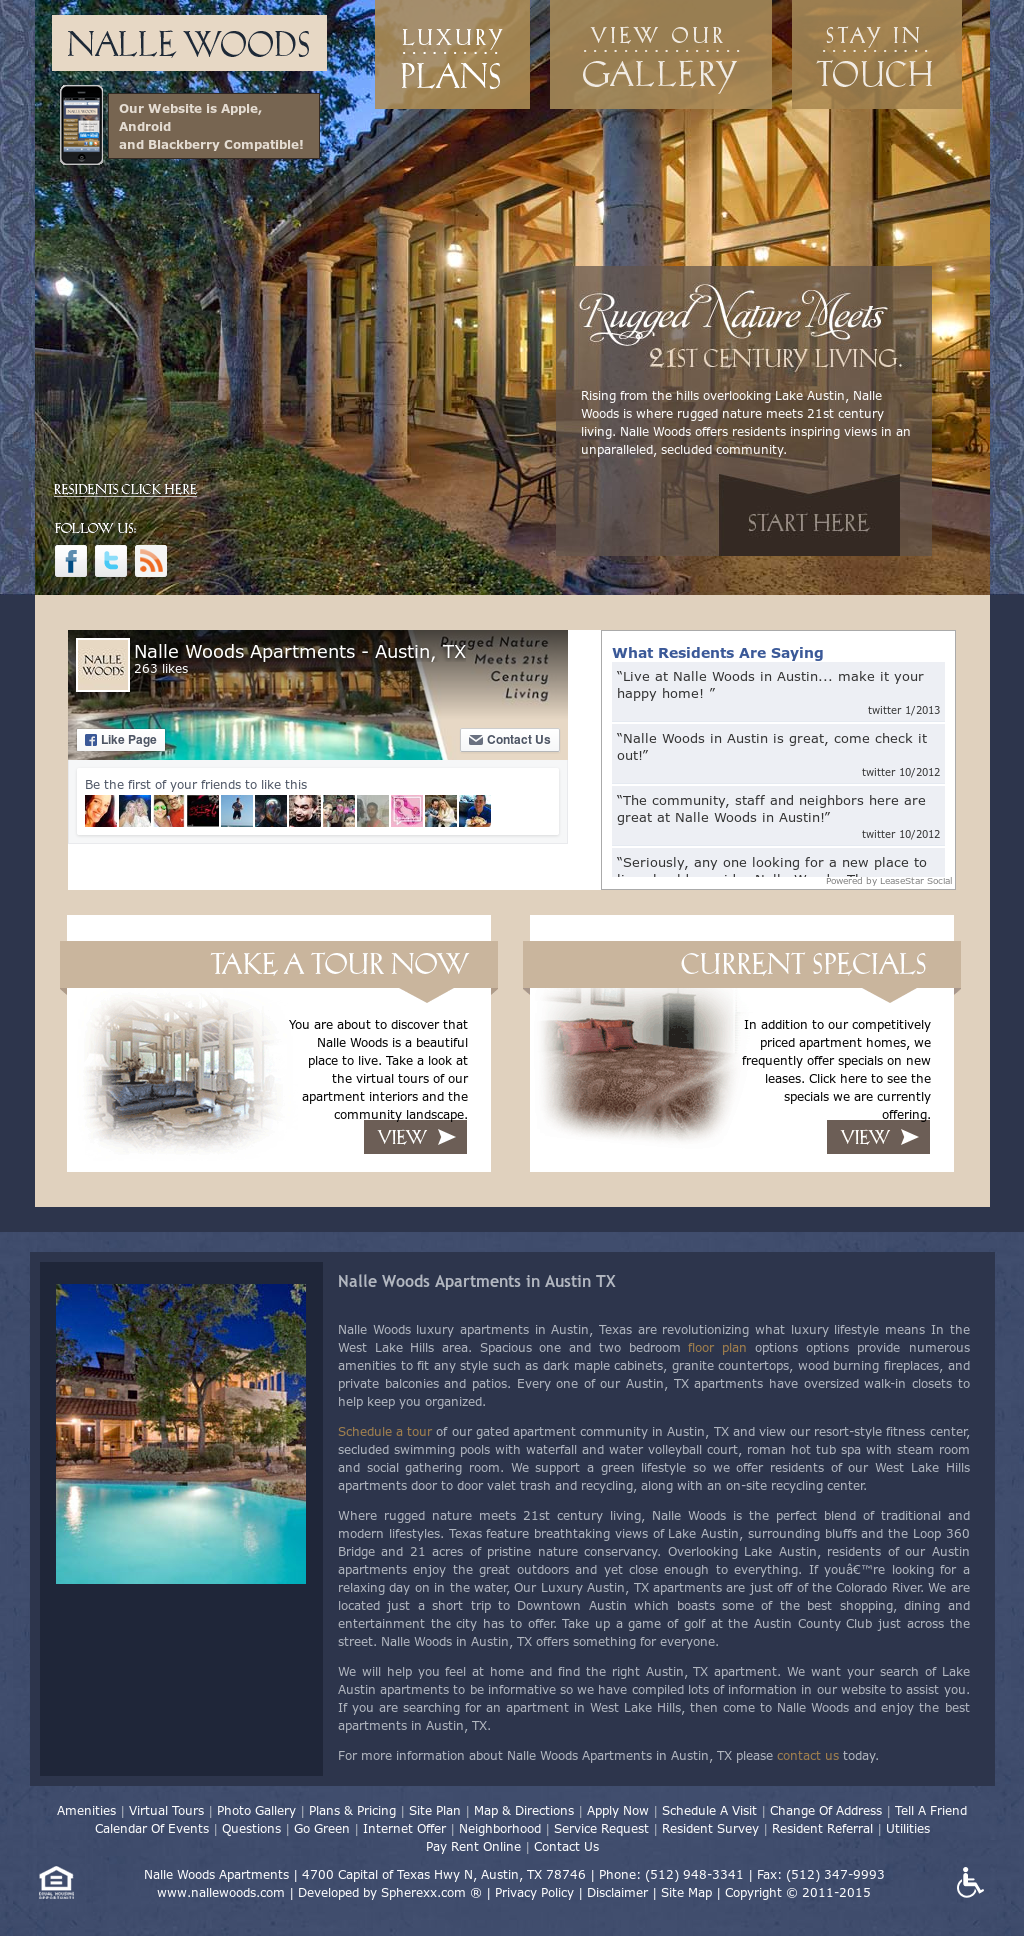 Nalle Woods Apartments - Austin, Tx Competitors, Revenue and